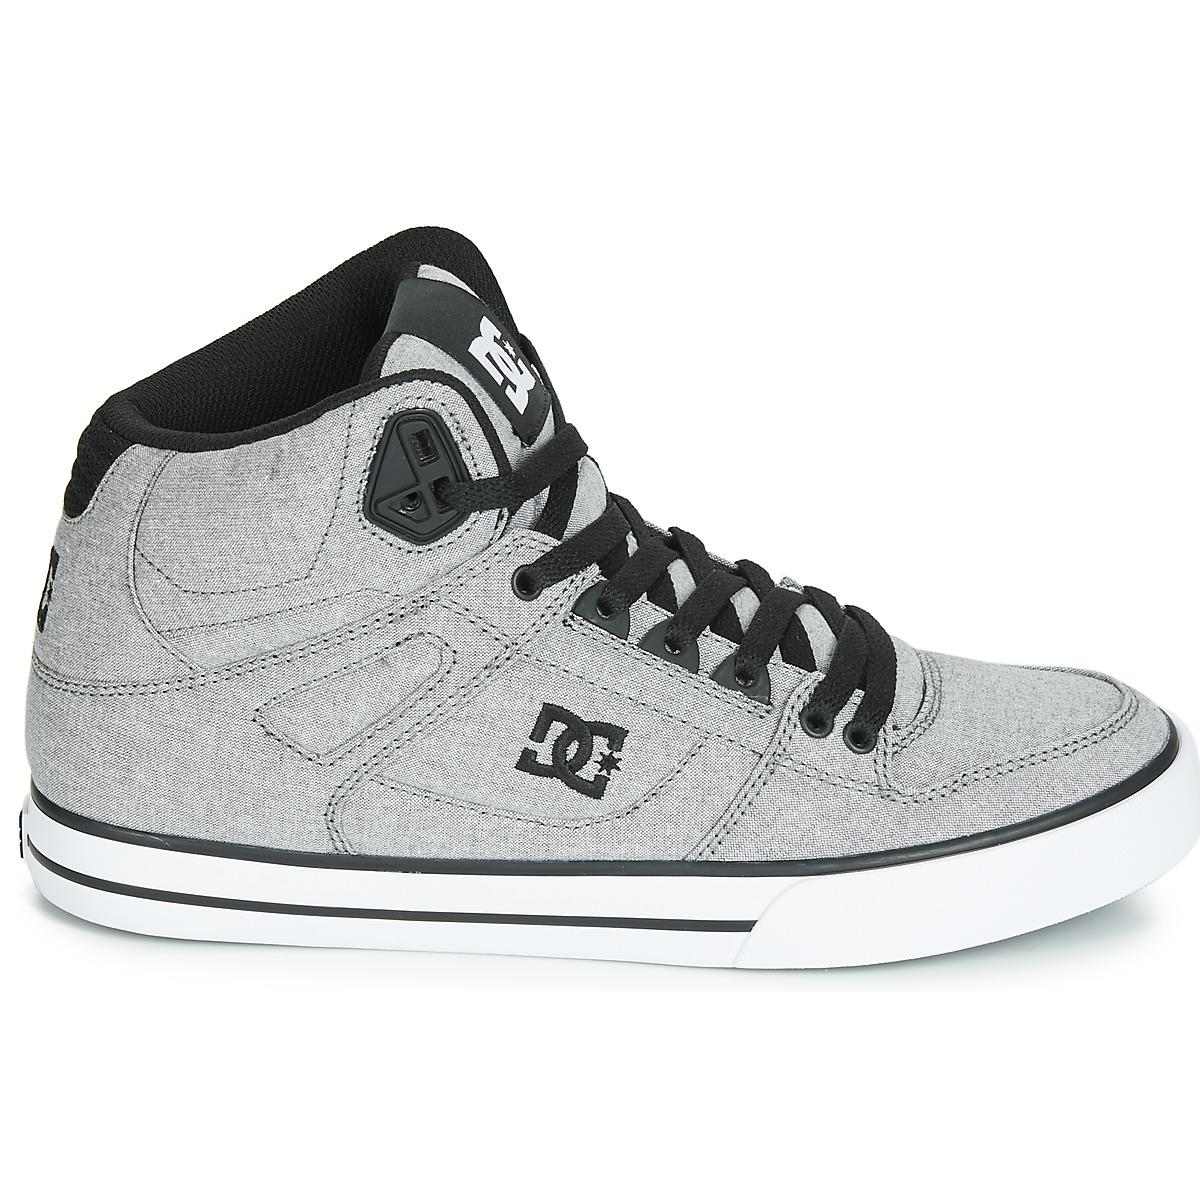 1276912bd4 DC Shoes - Gray Pure Ht Wc Txse M Shoe Gry Shoes (high-top. View fullscreen